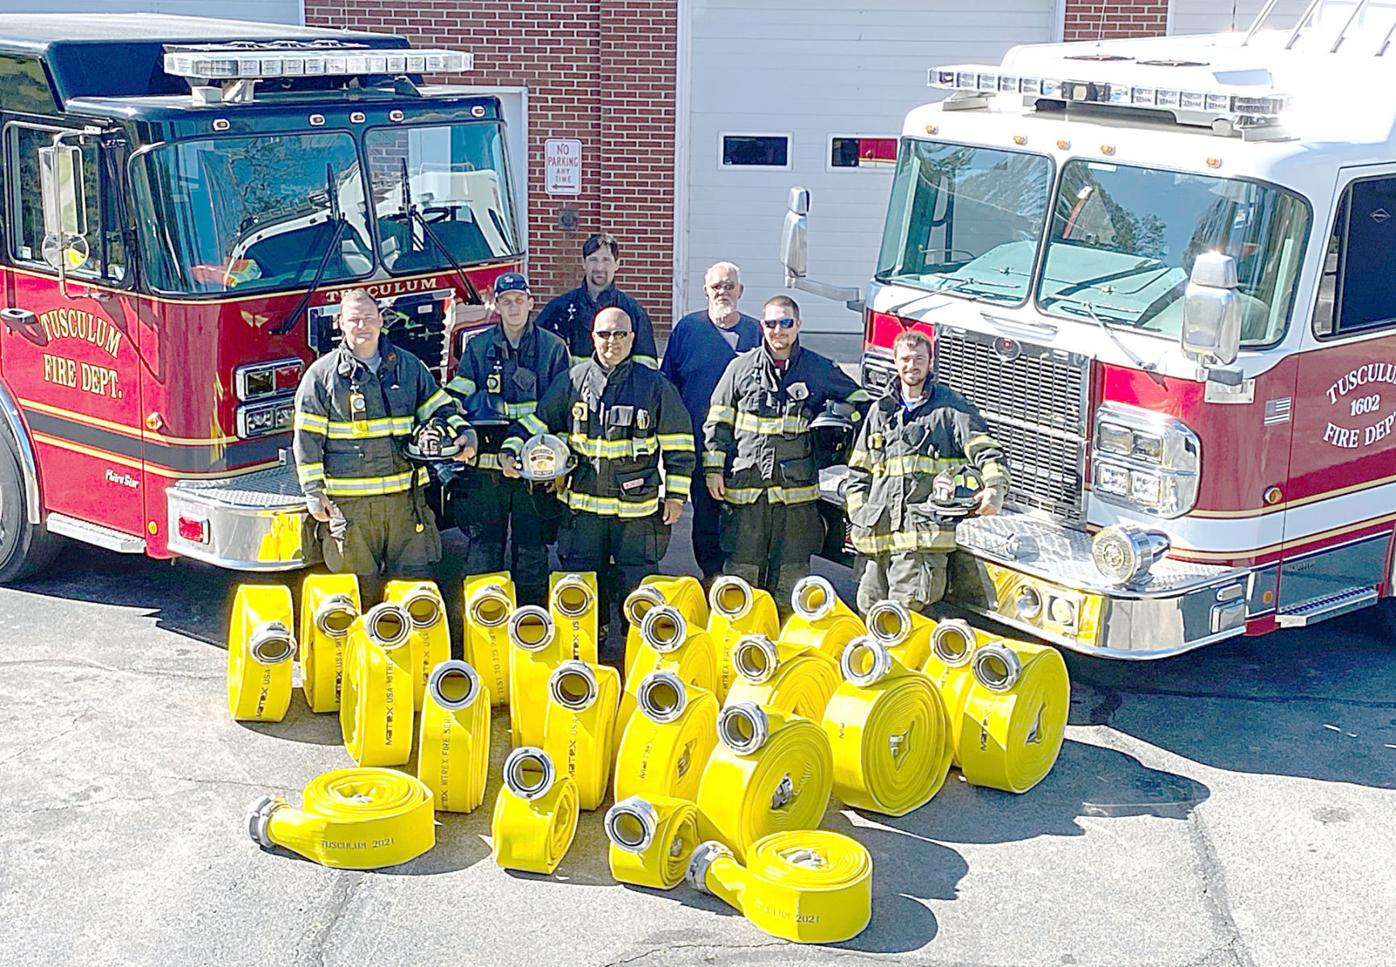 Tusculum FIrefighters With New Fire Hoses